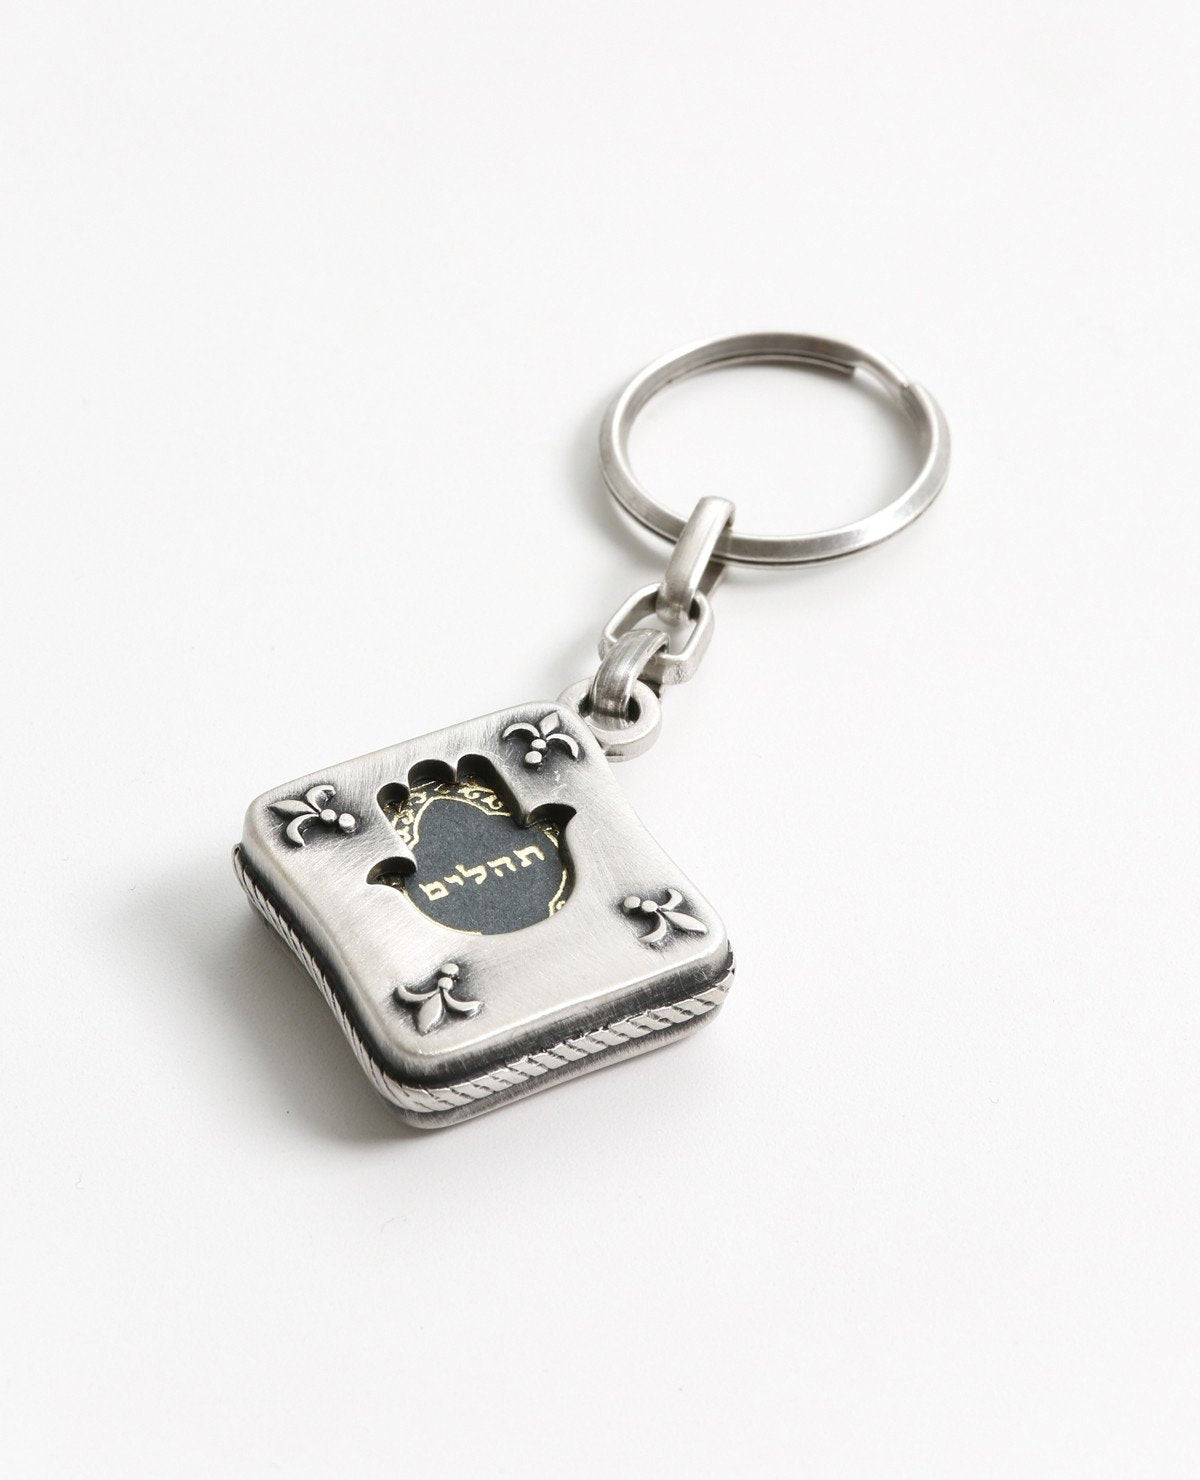 Tehillim is always with you. An exciting and elegantly designed keychain coated in sterling silver. Fashioned in the form of a small silver envelope with the book of Tehillim inside. The outline is designed on both sides as a frame with a hollow Hamsa shape in the middle, through which we can see the book on both its front and back sides. Feel safe and connected to your roots any time you have this wonderful keychain on you. You will feel even better when you grant it with love to the dearest people in your